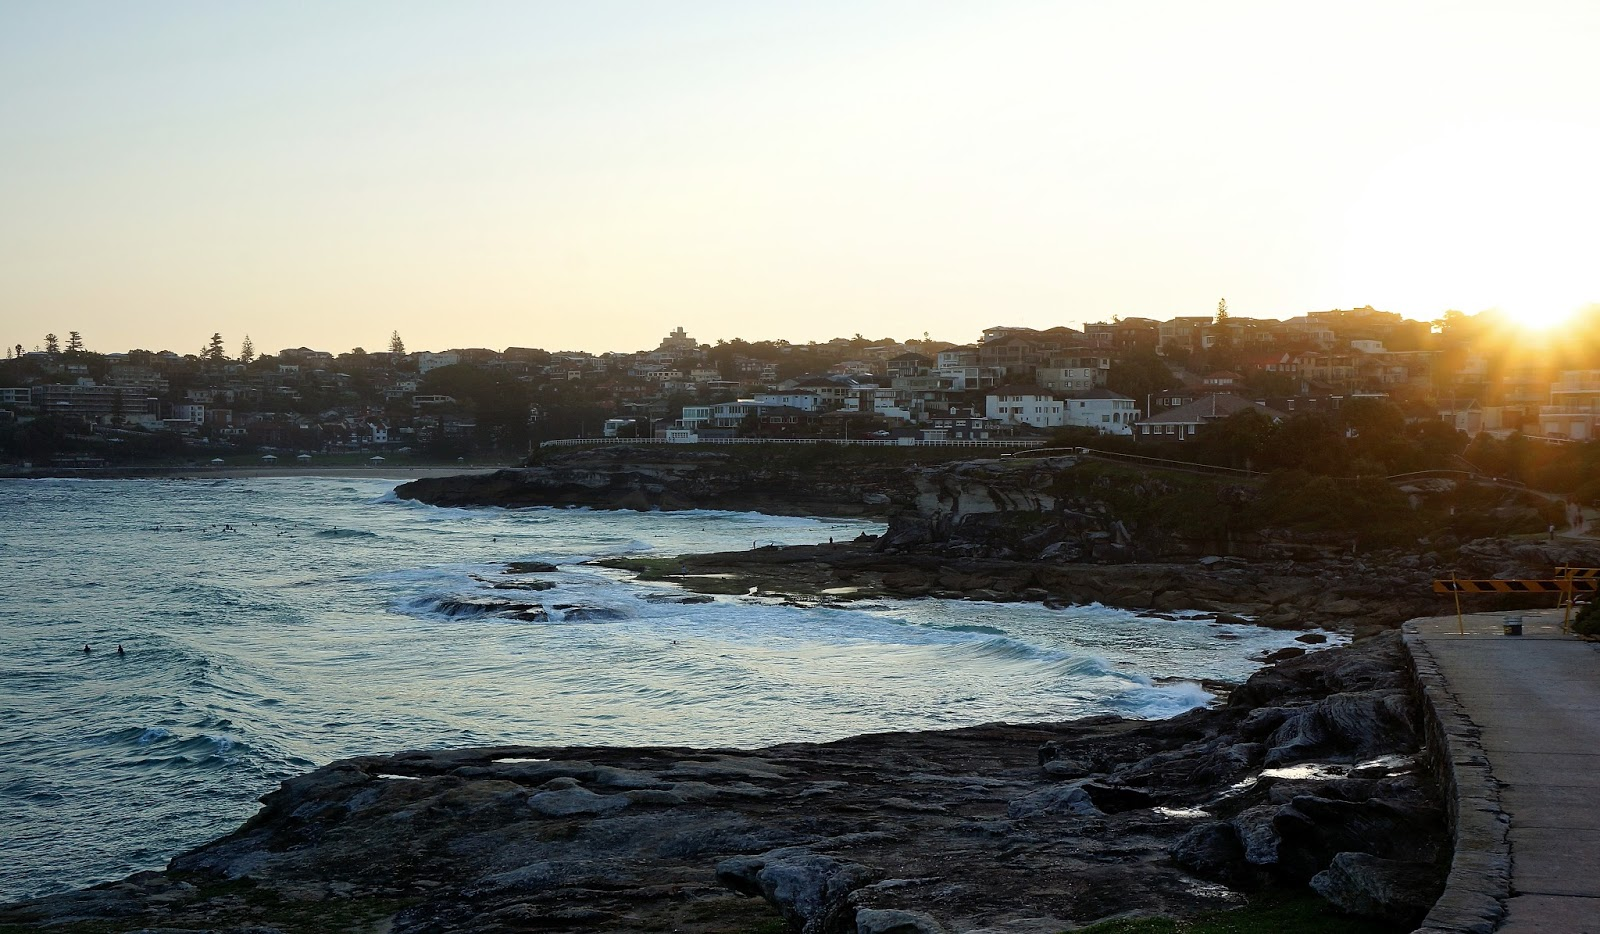 Bondi to Coogee Coastal Walk Sydney Australia Landscape photography Lexie Blush www.lexieblush.co.uk 1